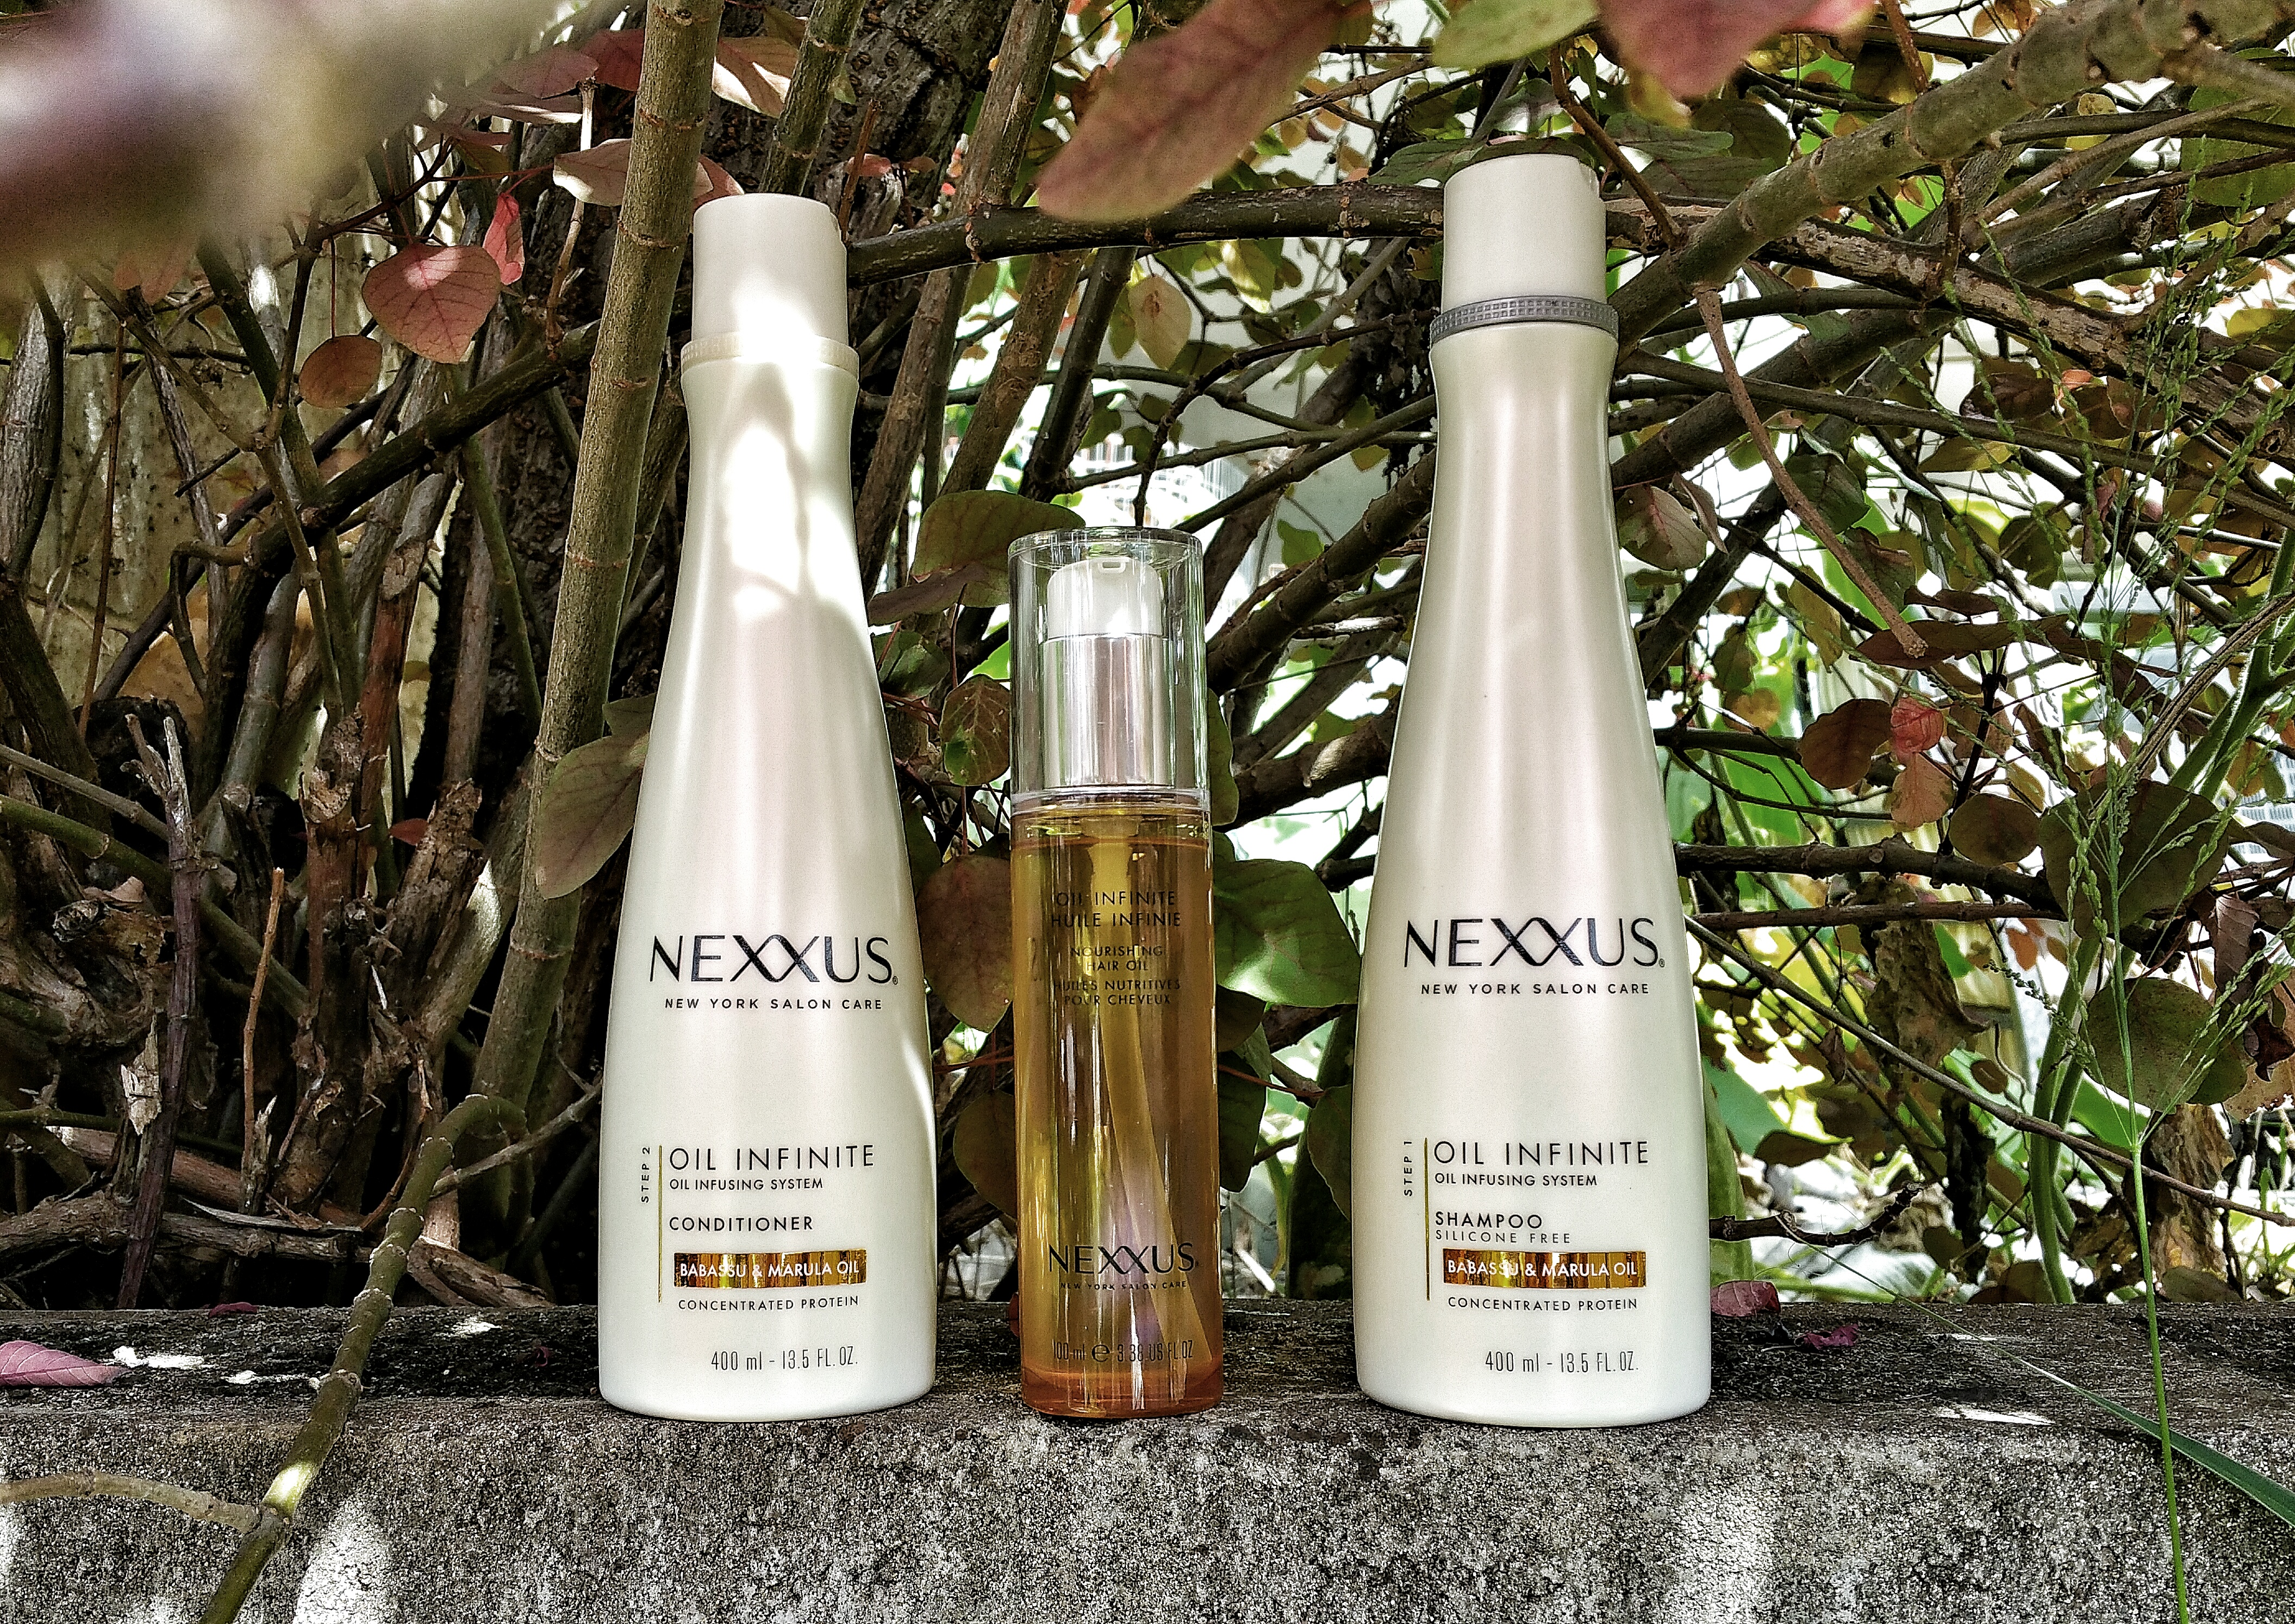 hair, curly hair, hair care, Nexxus, Oil infinite, nexxus oil infinite oil infusing system, shampoo, conditioner, hair oil, babassu, marula oil, hair love,